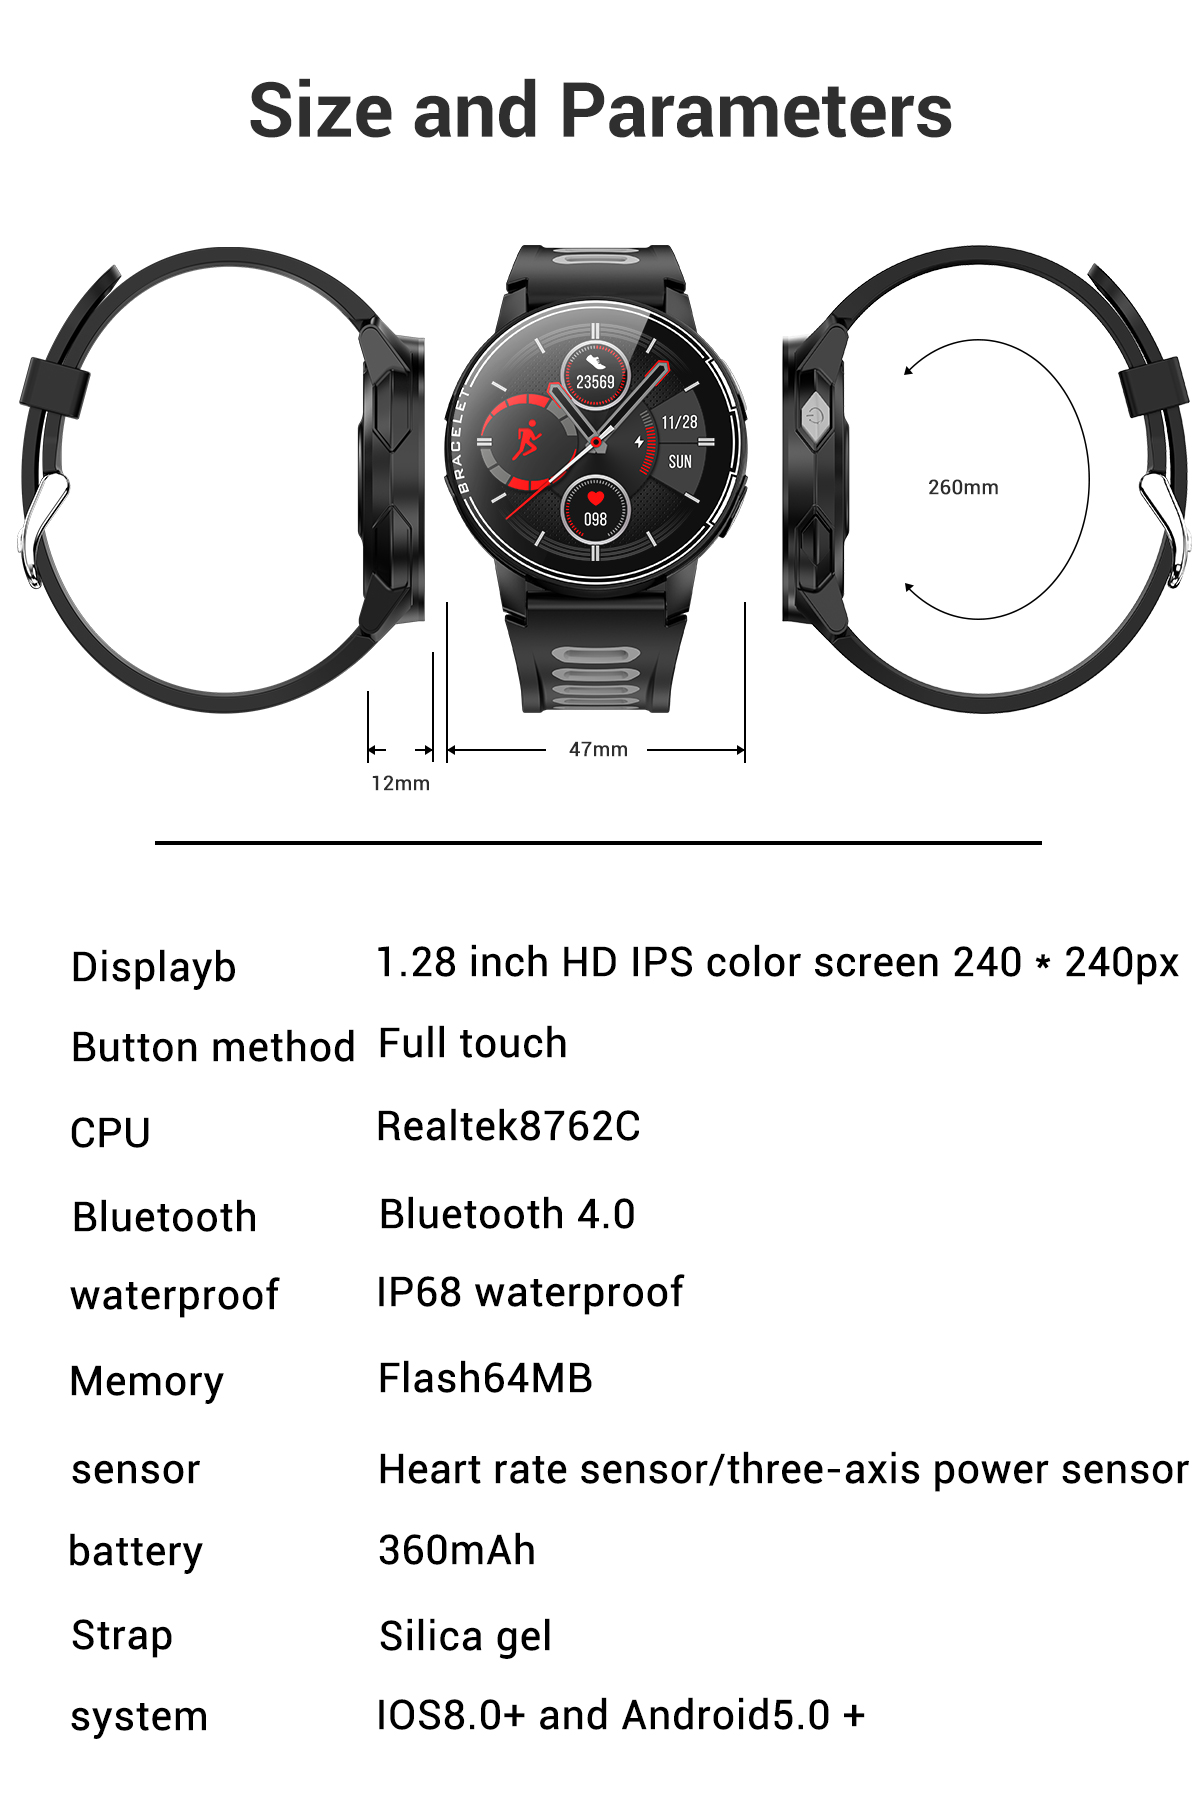 H797c47ab6a974b83bf84f6906c42315eR 2020 New L6 Smart Watch IP68 Waterproof Sport Men Women Bluetooth Smartwatch Fitness Tracker Heart Rate Monitor For Android IOS